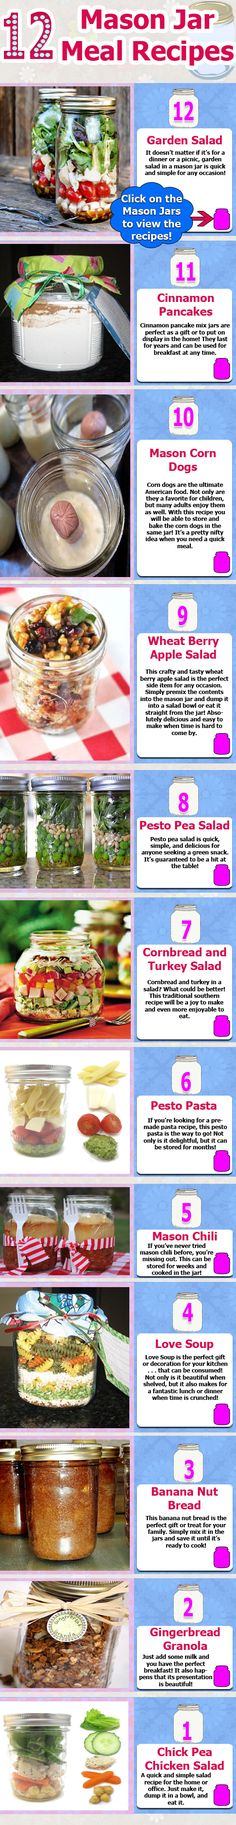 12 Mason Jar Meal Recipes- love this! Some of them are meals made in the mason jars and some are meal mixes to give as gifts. I loooove mason jars Mason Jar Meals, Meals In A Jar, Mason Jars, Canning Jars, Think Food, Food For Thought, Love Food, Great Recipes, Jar Recipes